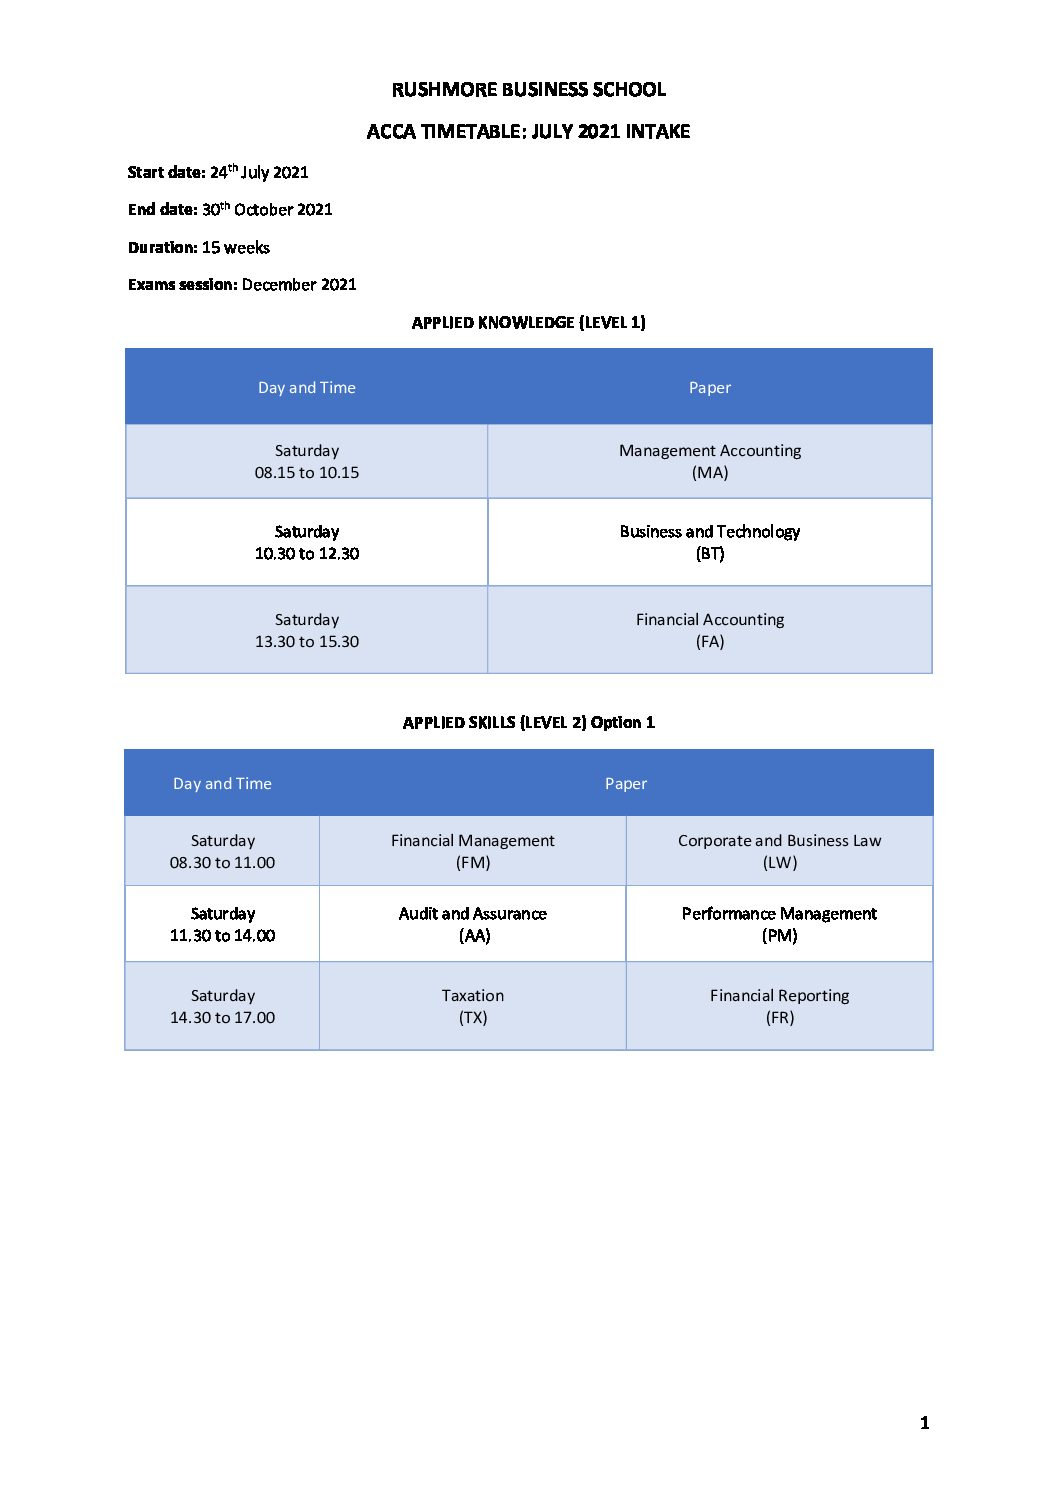 ACCA Levels 1 & 2 Timetable